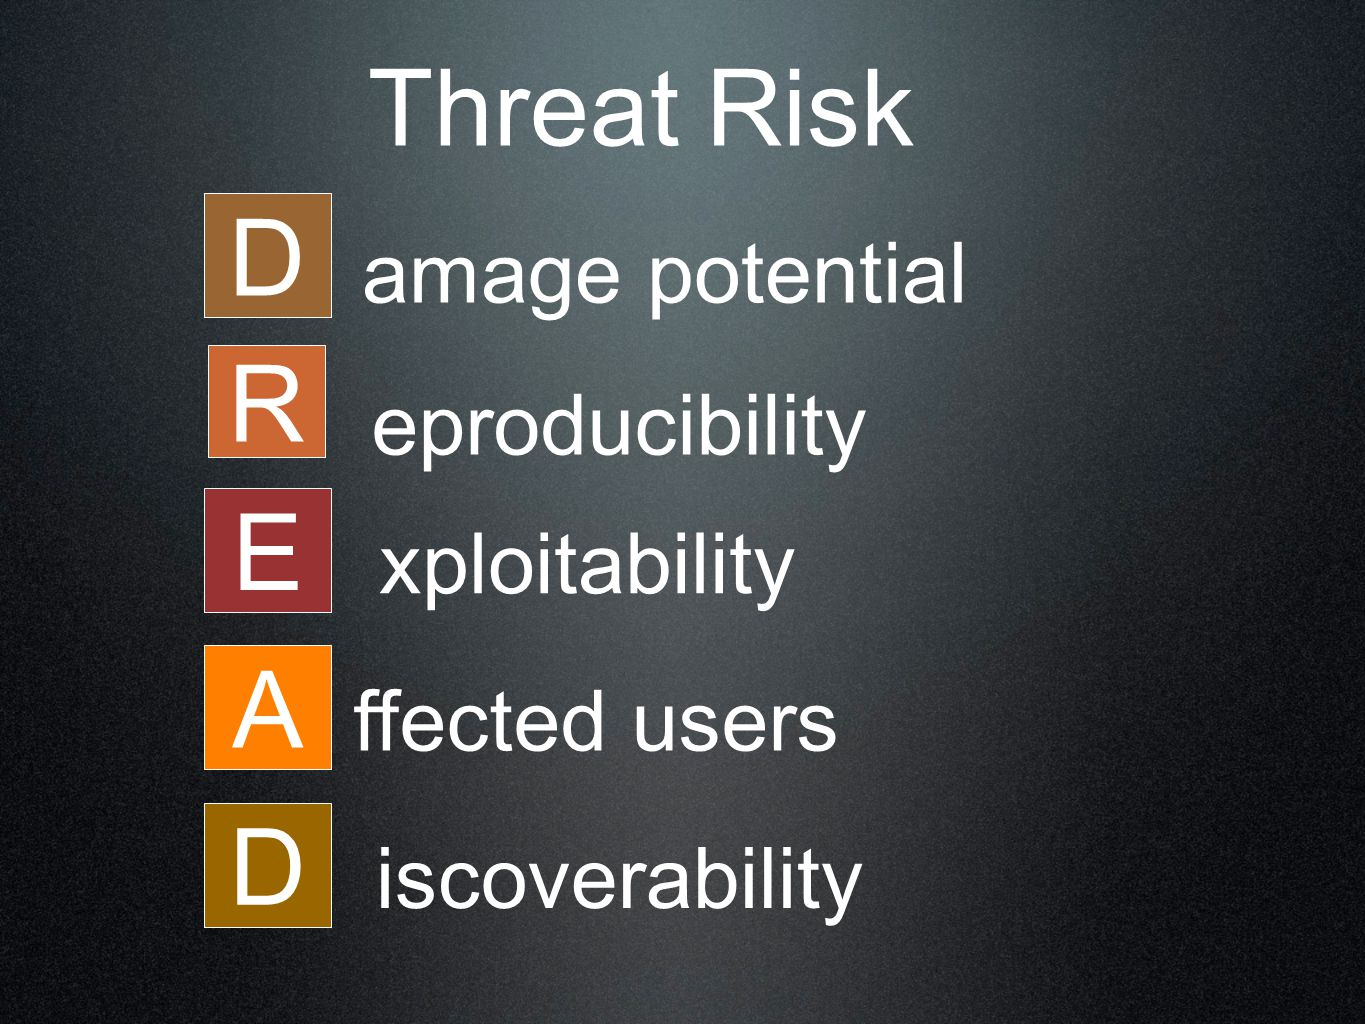 D R E A D amage potential eproducibility xploitability ffected users iscoverability Threat Risk